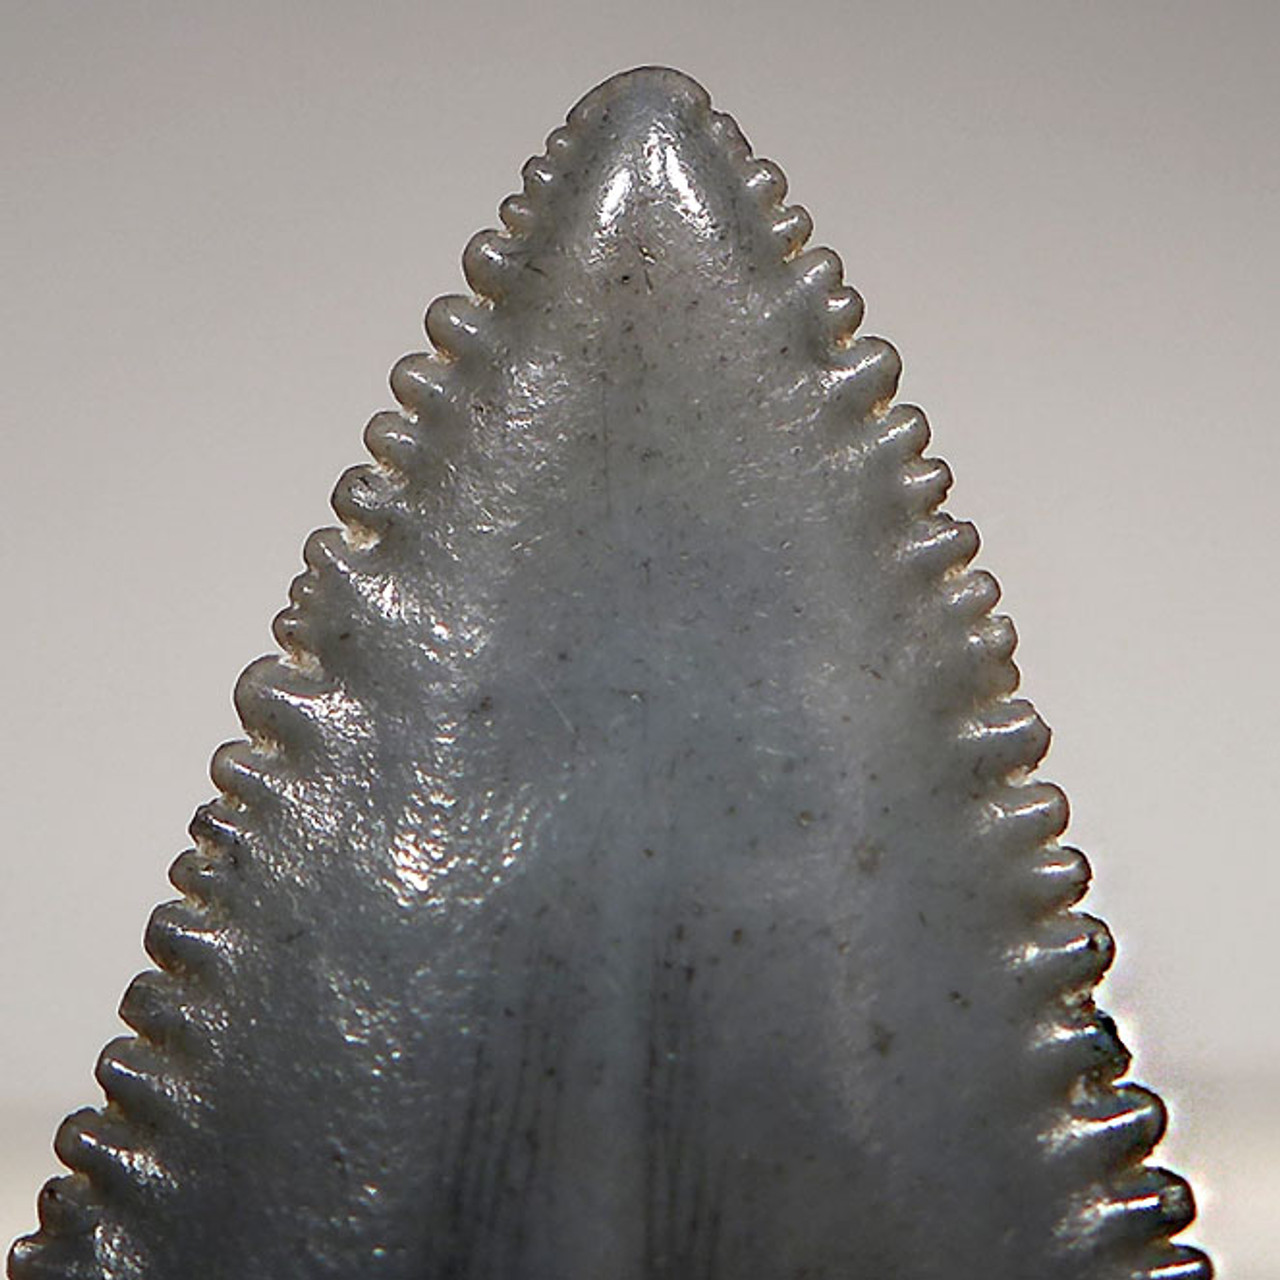 SHX047  - INVESTMENT GRADE 2.15 INCH FOSSIL GREAT WHITE SHARK TOOTH FROM SOUTH CAROLINA